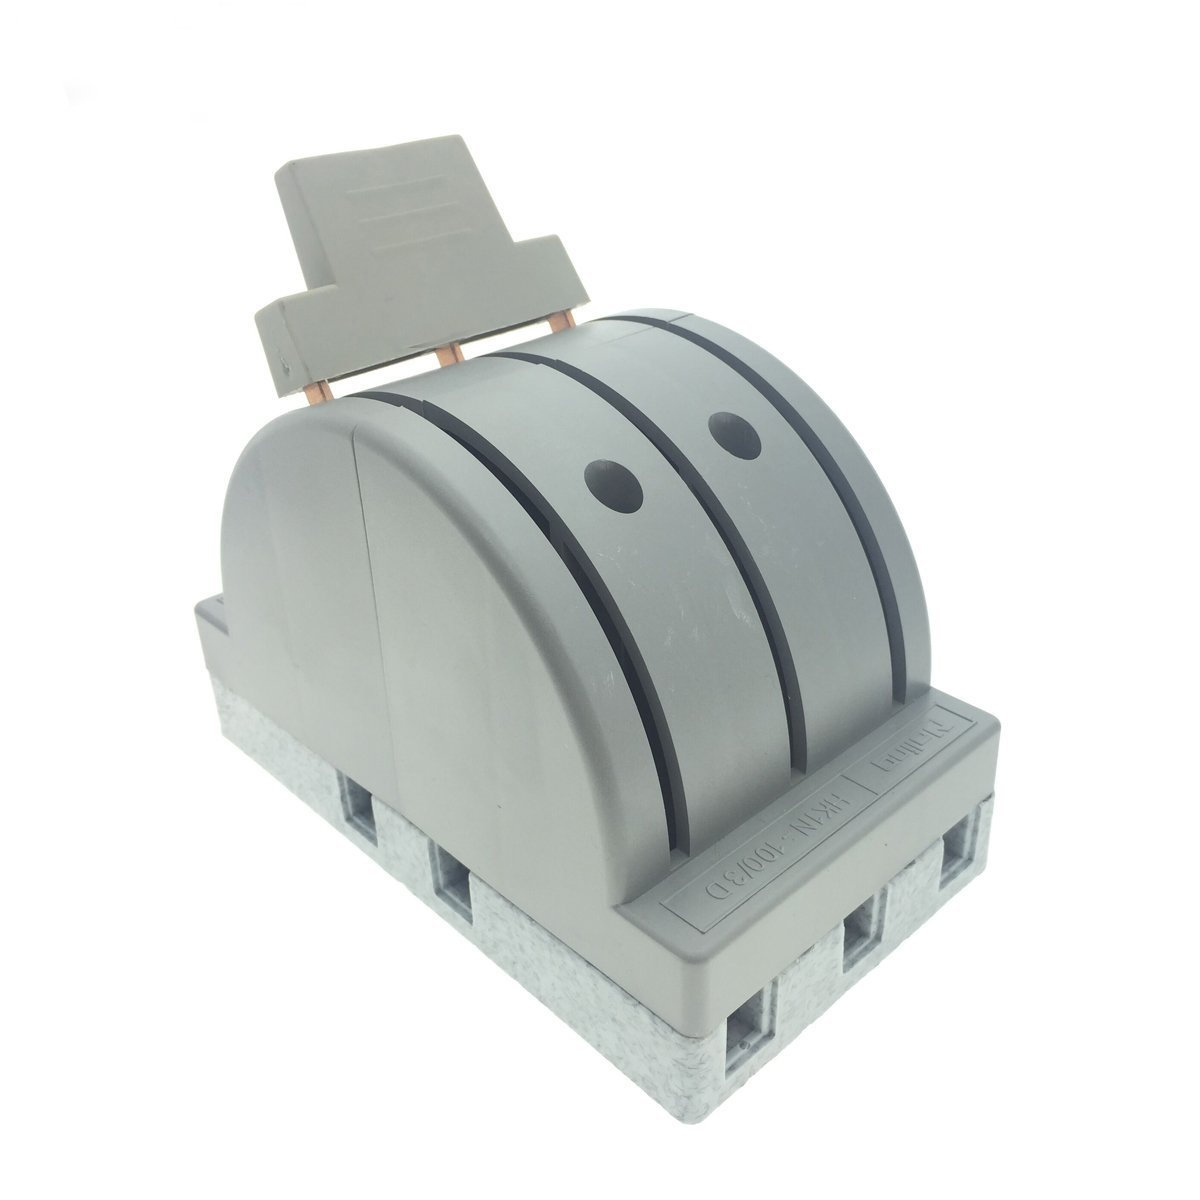 YXQ 380V 100A 3 Pole Double Throw Power Supply Safety Control Knife Switch Gray by YXQ (Image #1)